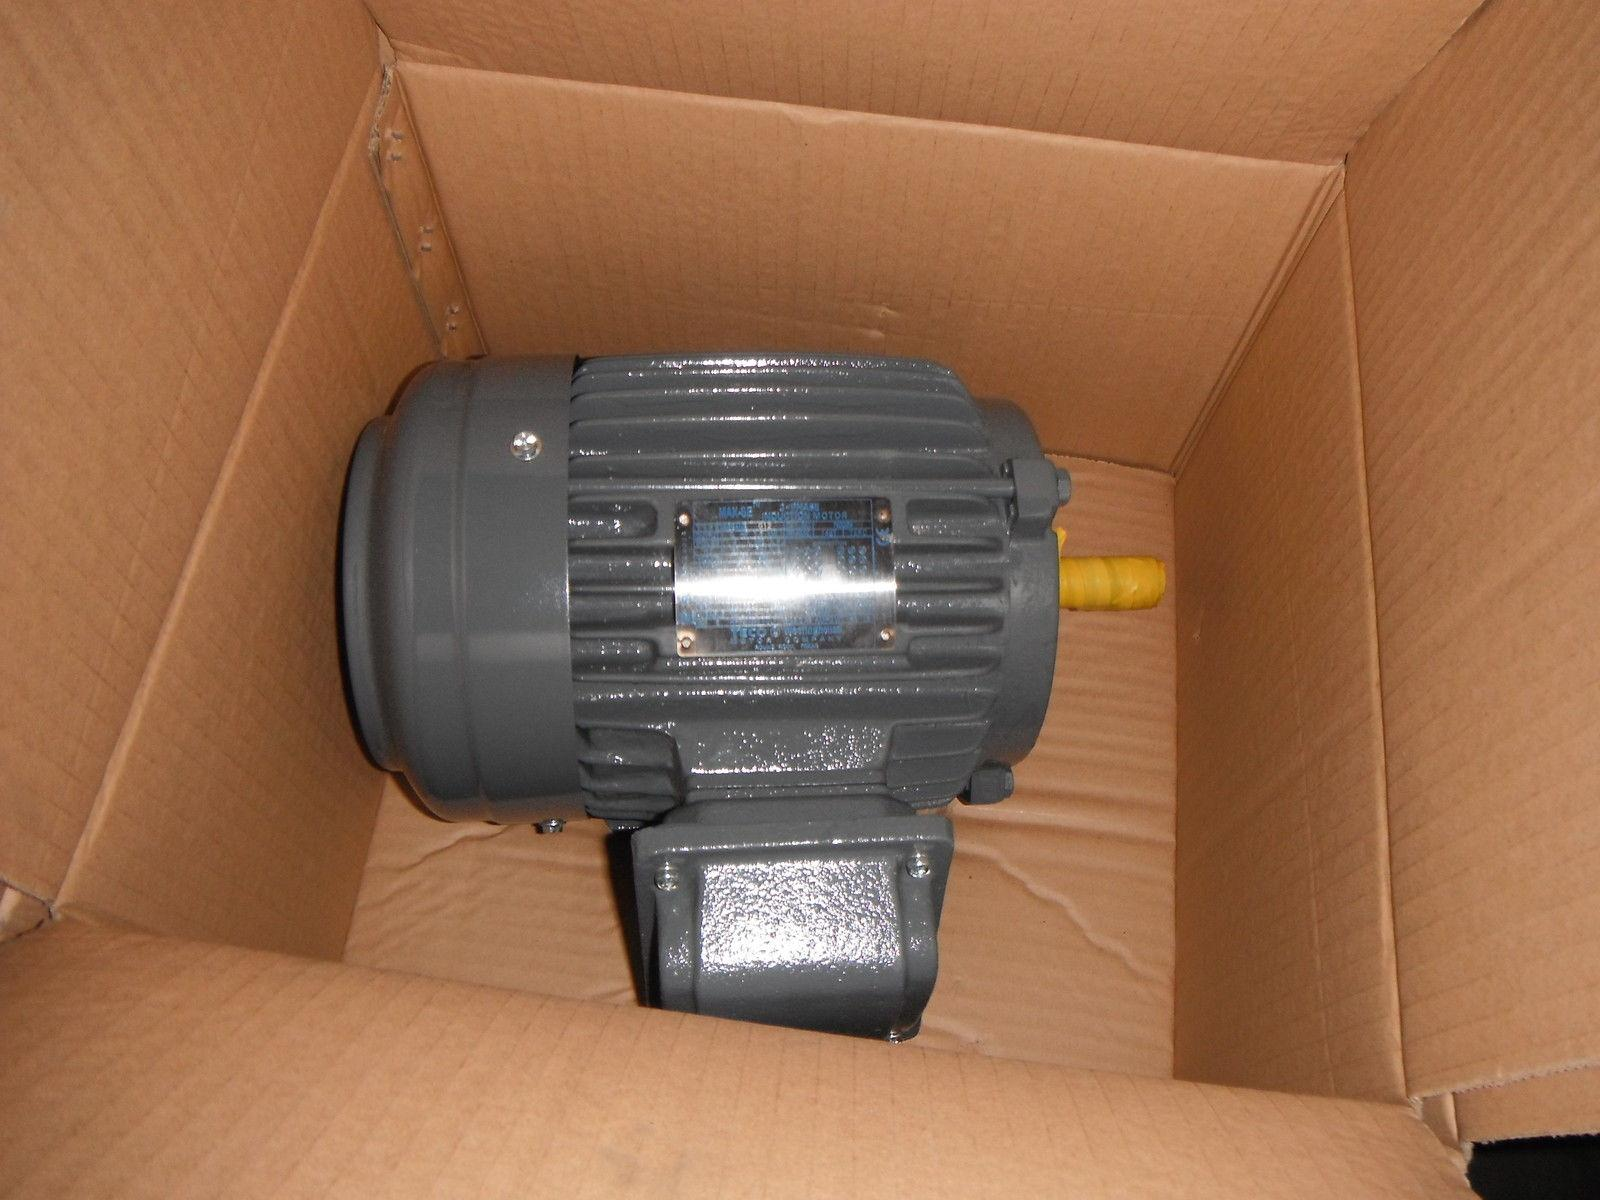 Teco n0024 2 hp 3 phase induction electric motor 247 ebay for 2 hp 3 phase motor